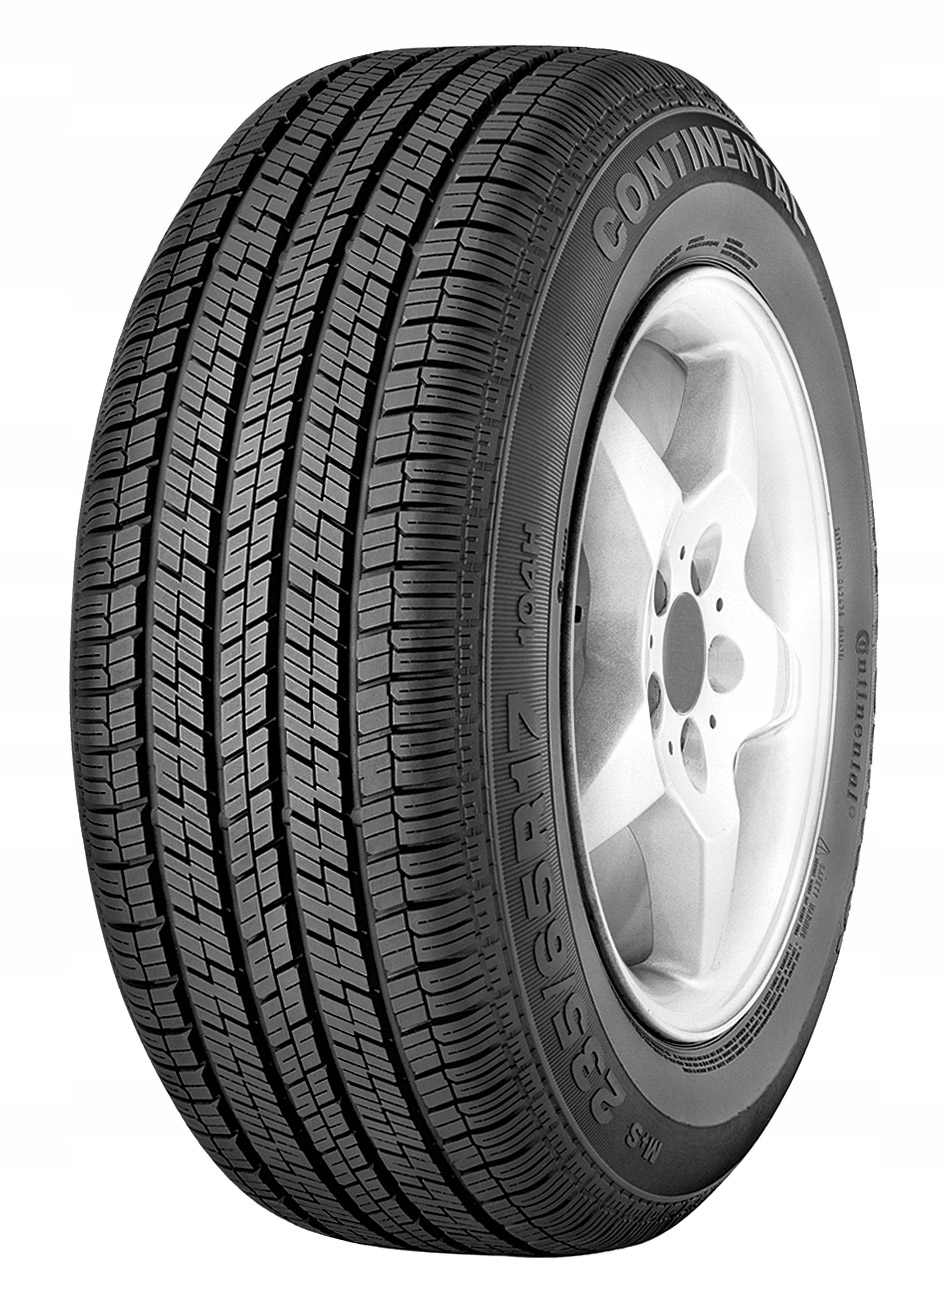 1x Continental 4x4Contact 235/50 R18 101H XL